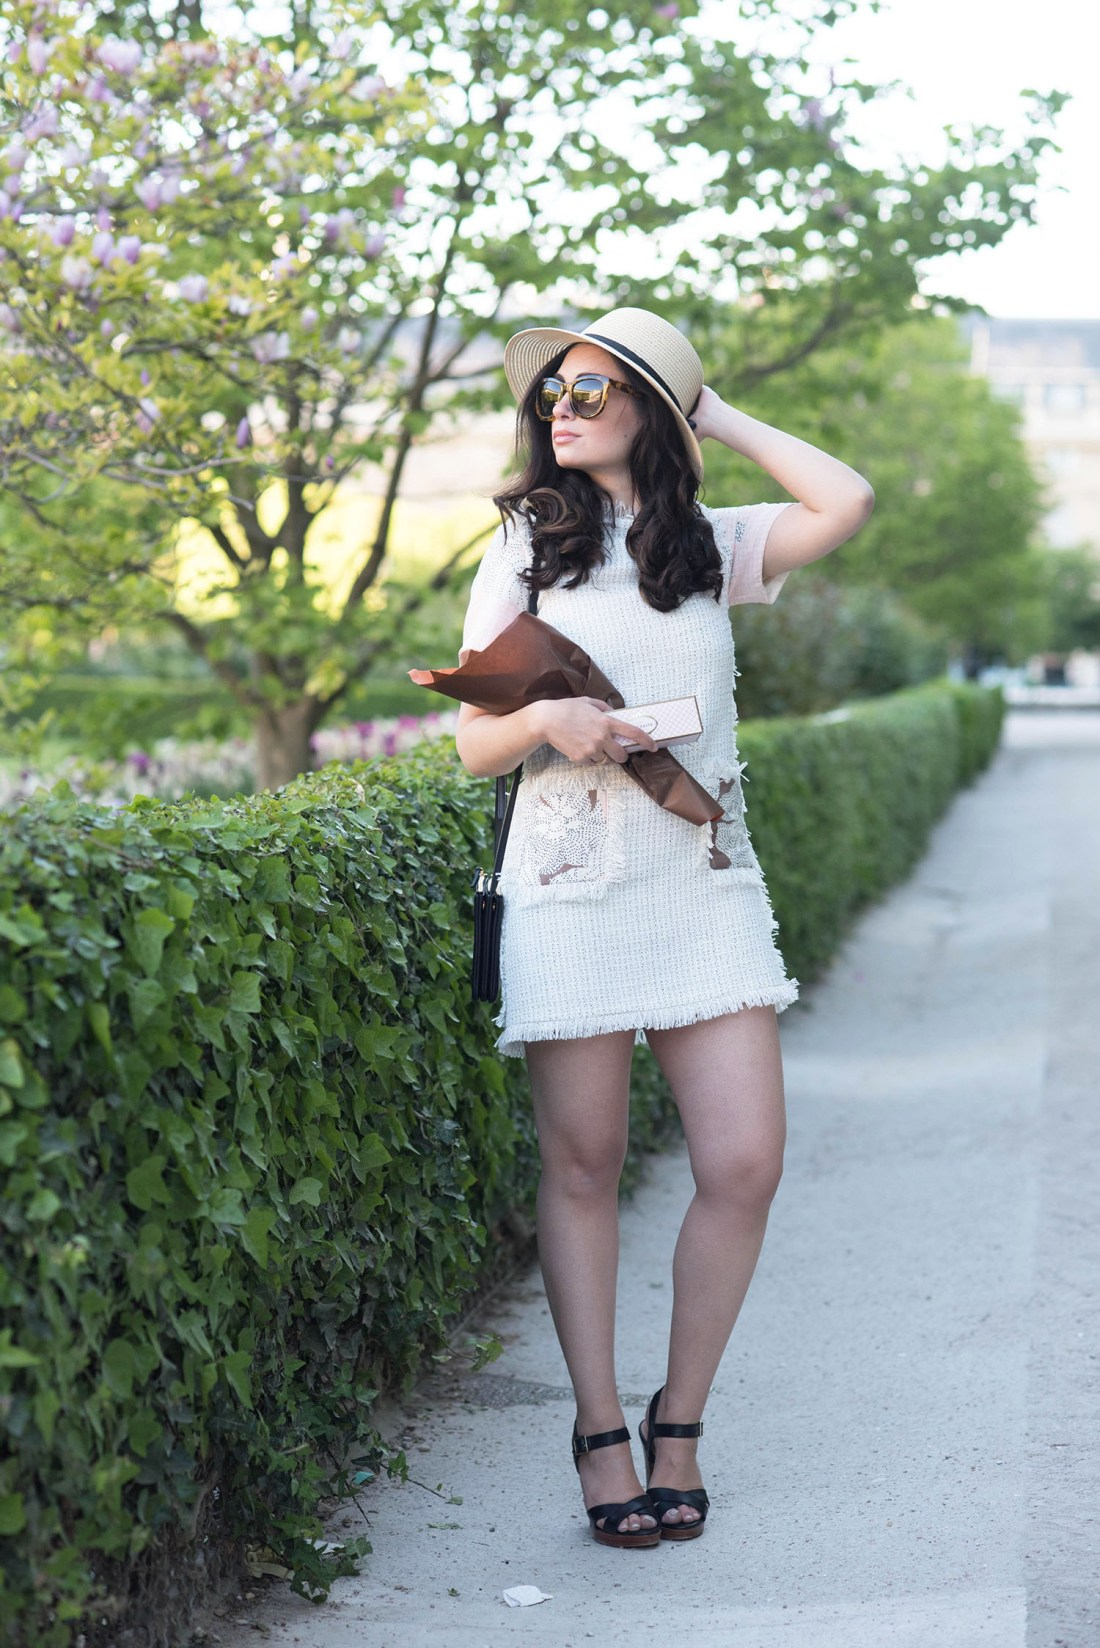 Fashion blogger Cee Fardoe of Coco & Vera in the Palais Royal garden in Paris wearing a Floriane Fosso dress and Anine Bing sunglasses